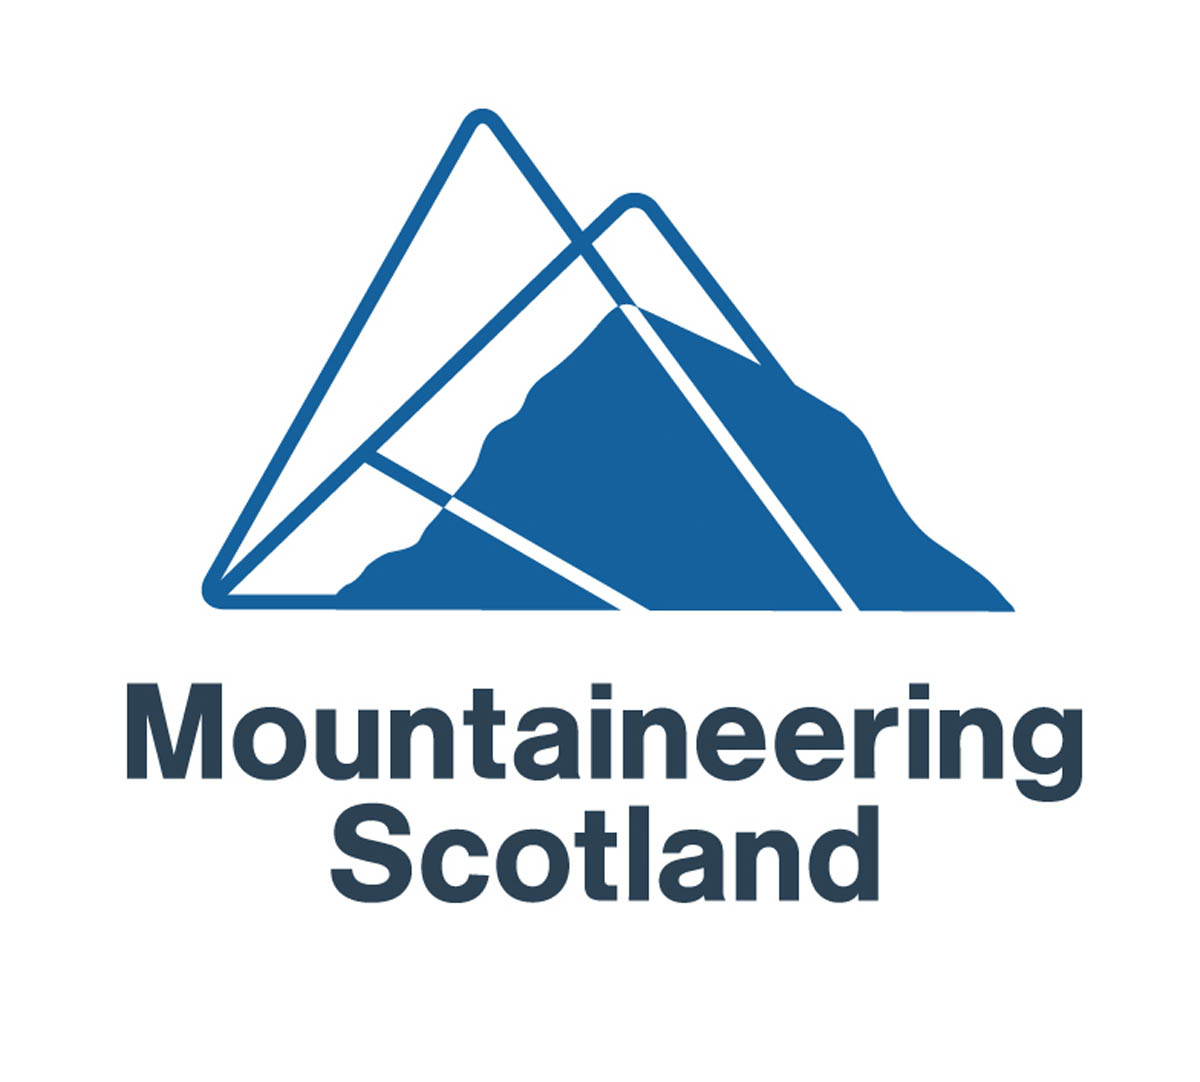 Mountaineering Scotland